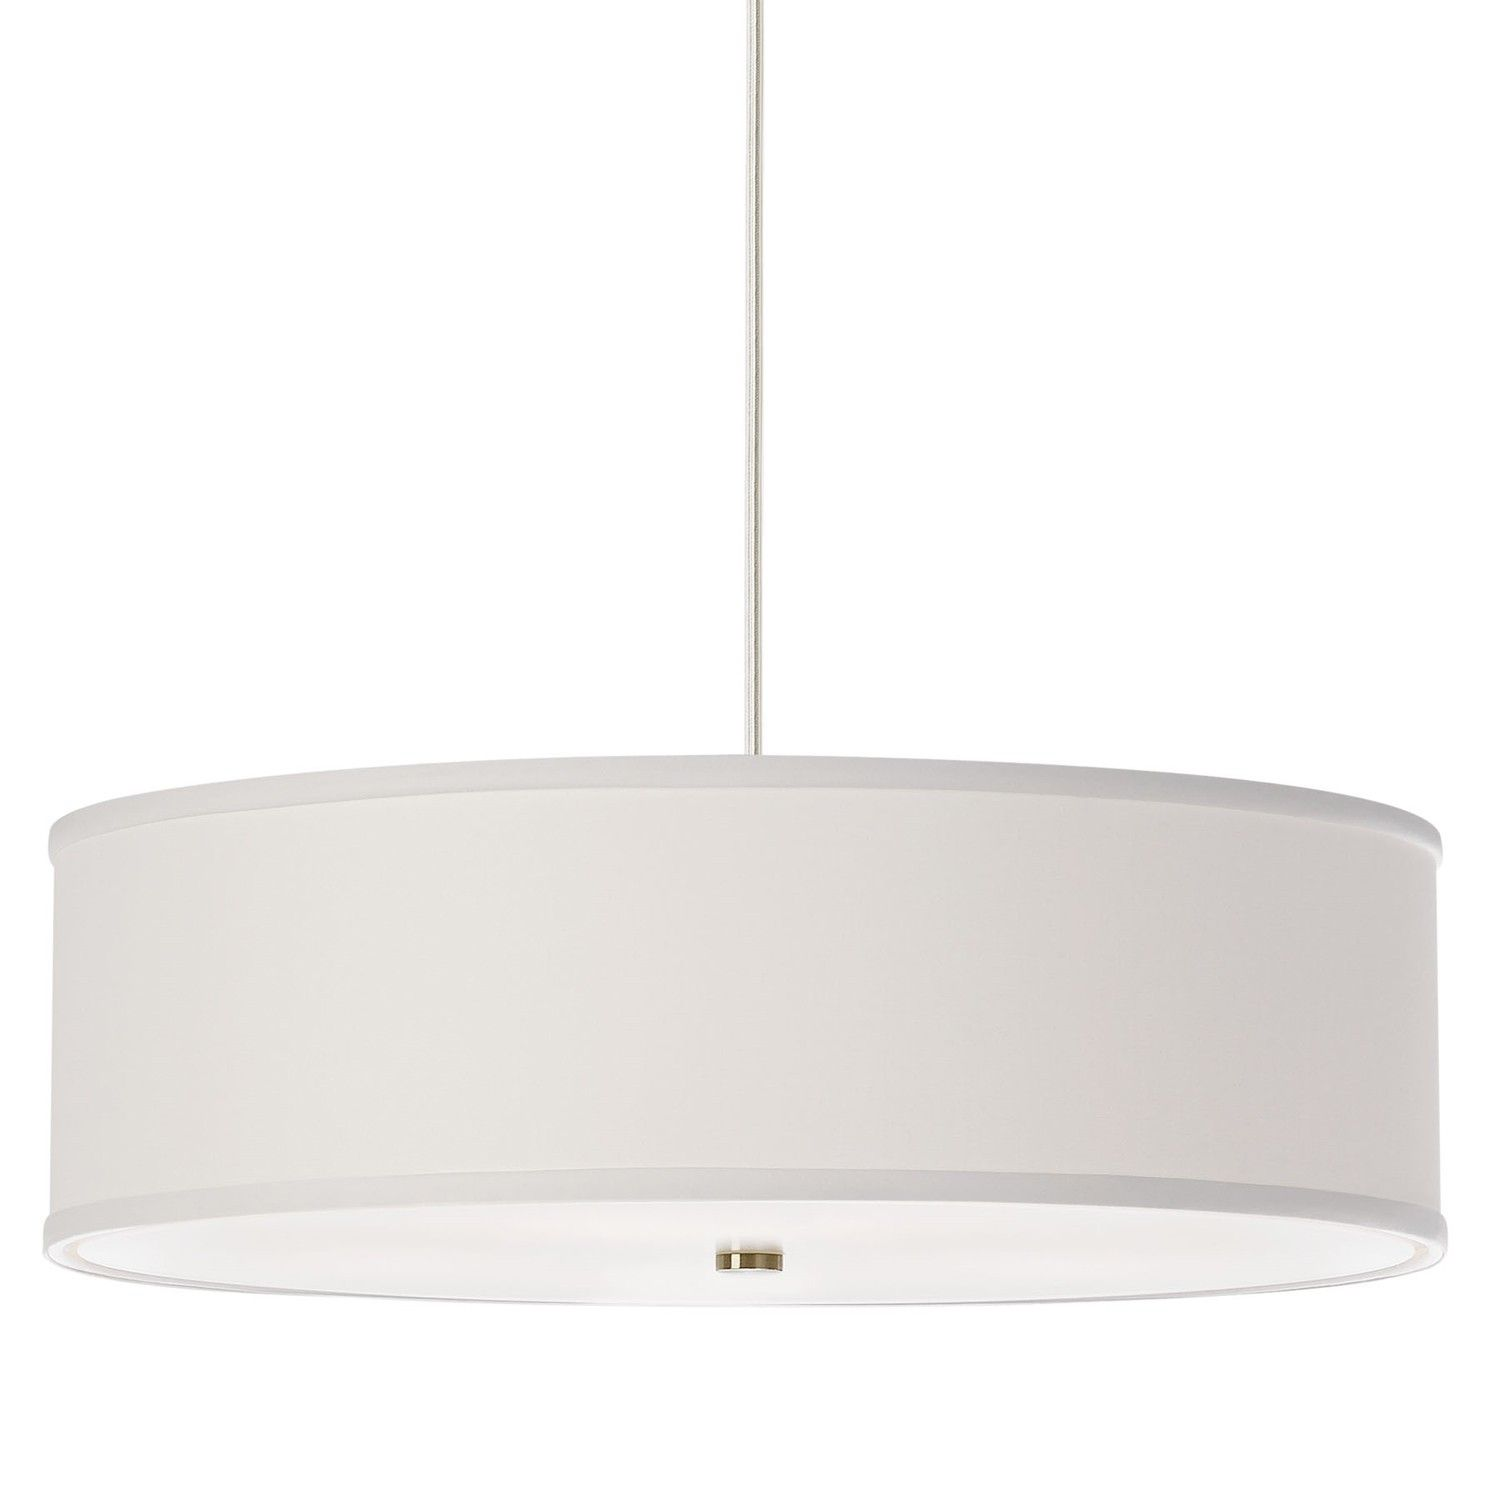 Simply Beautiful, The Mulberry Pendant Is A Classic Drum Pendant Light.